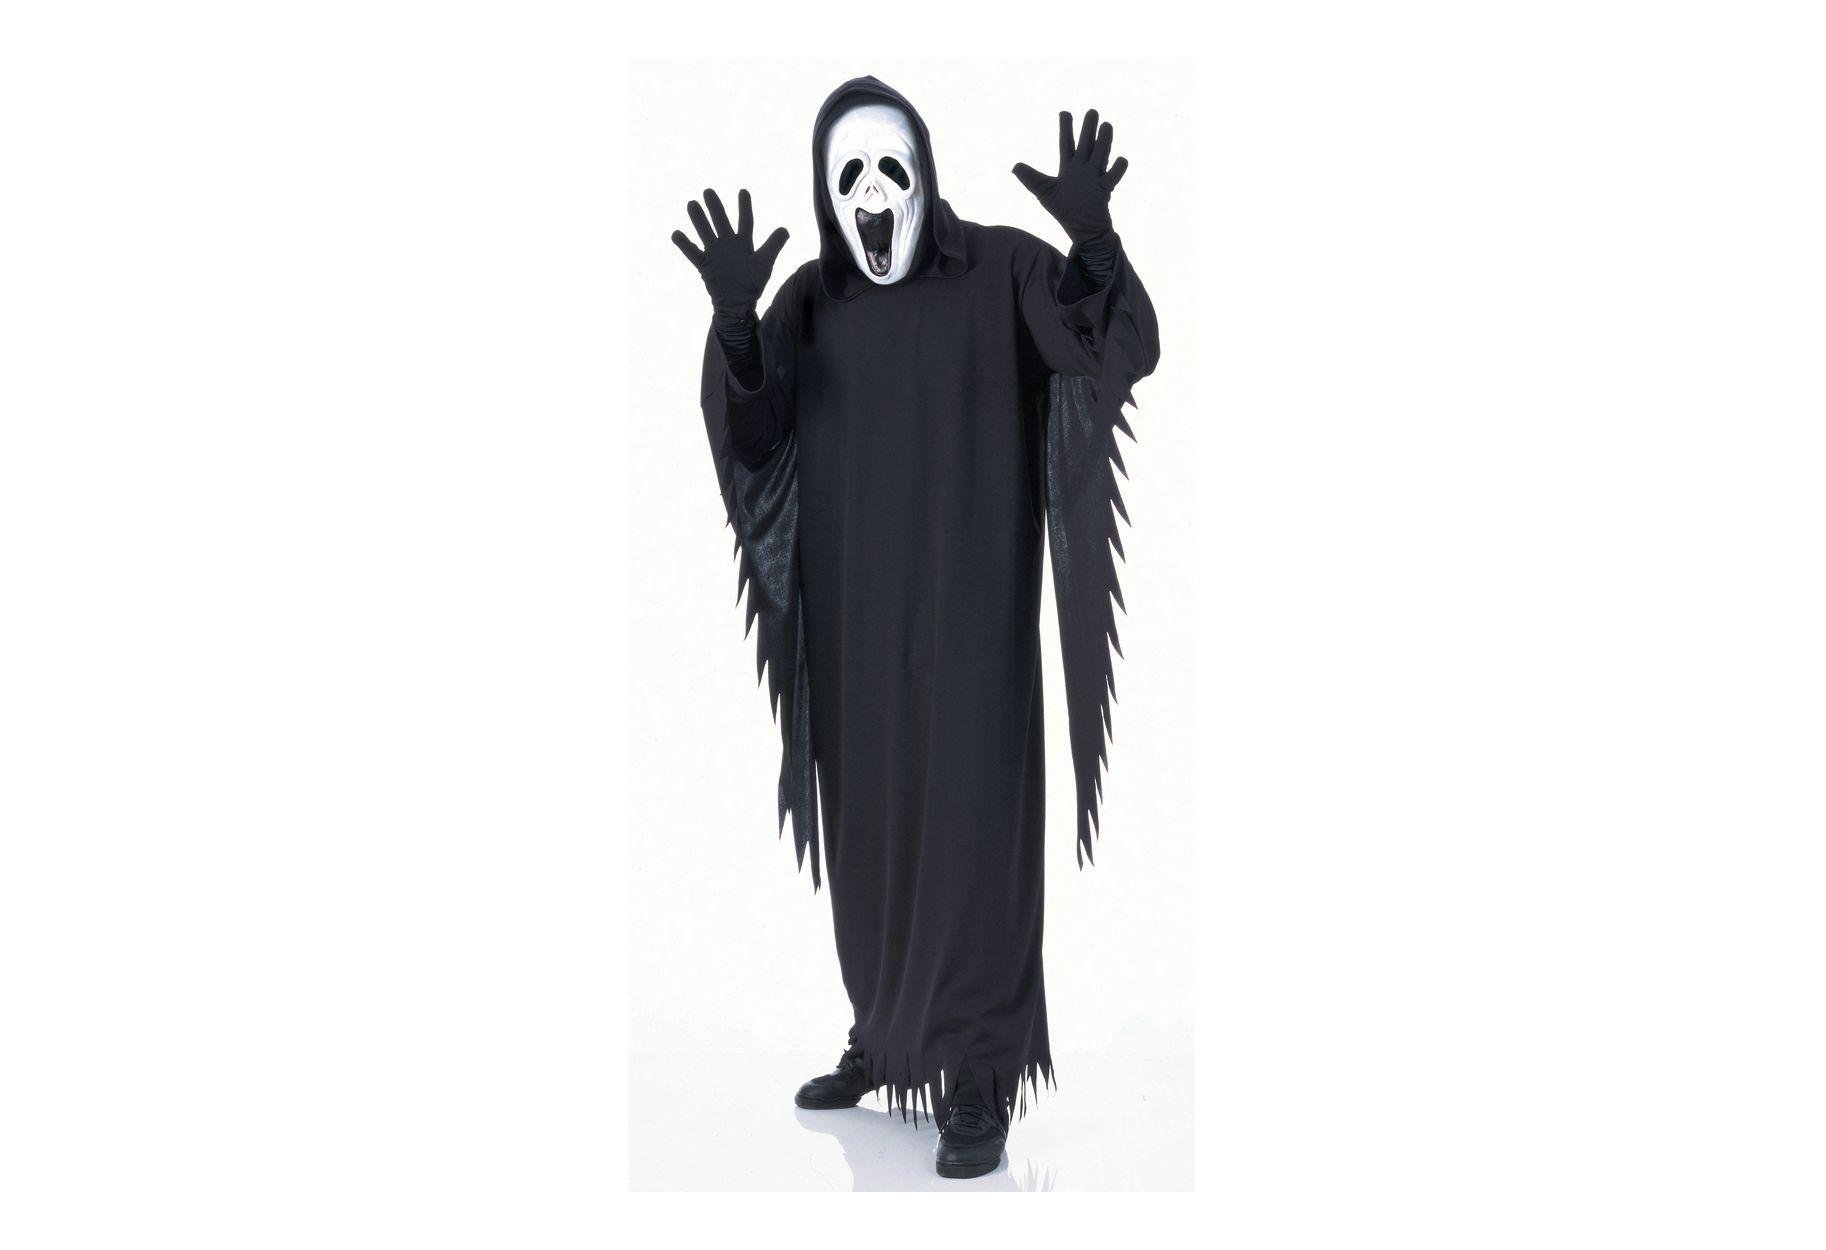 Image of Adult Howling Ghost Fancy Dress Costume